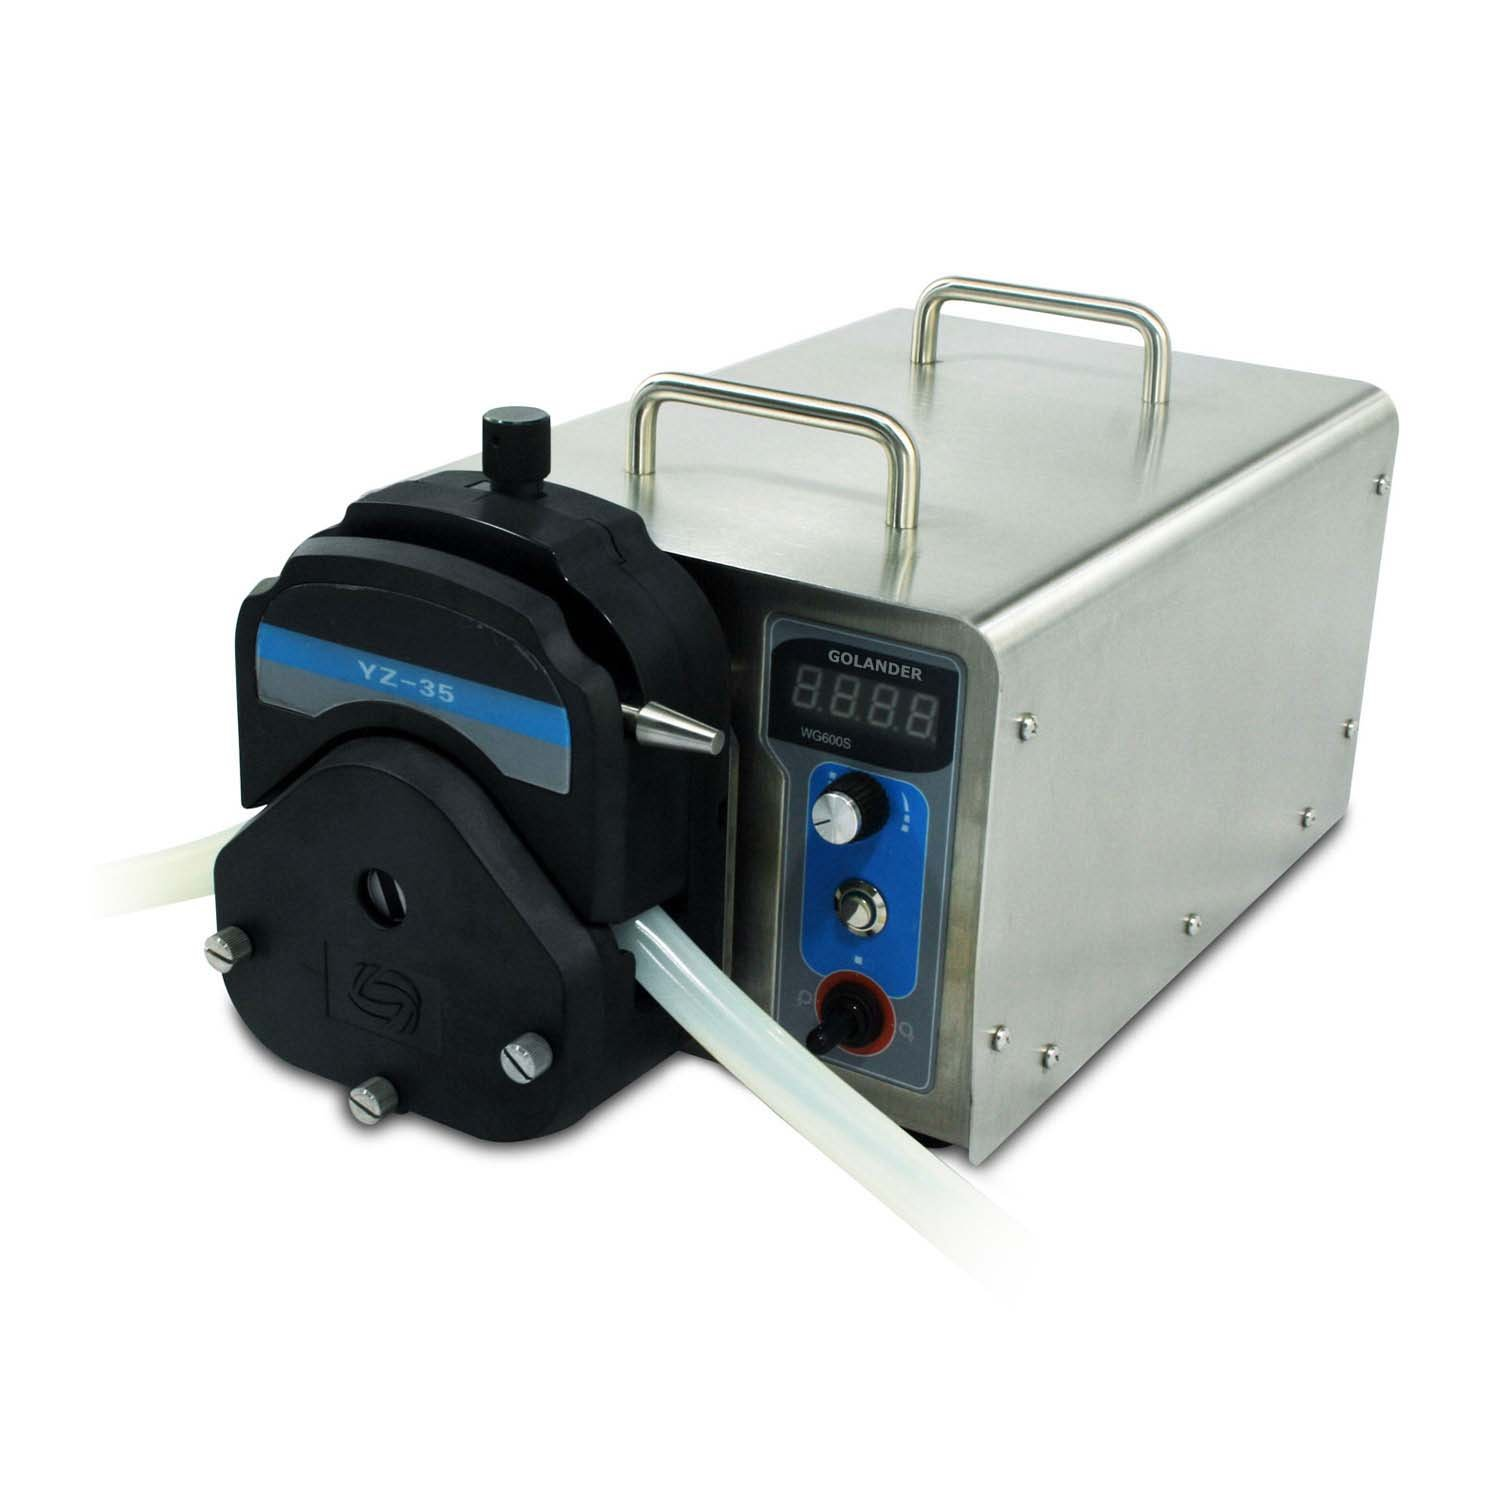 WG600S Industrial Variable Speed Peristaltic Pump with Pump Head YZ35 (1 Channel), Flow Rate 0.4~13 L/min